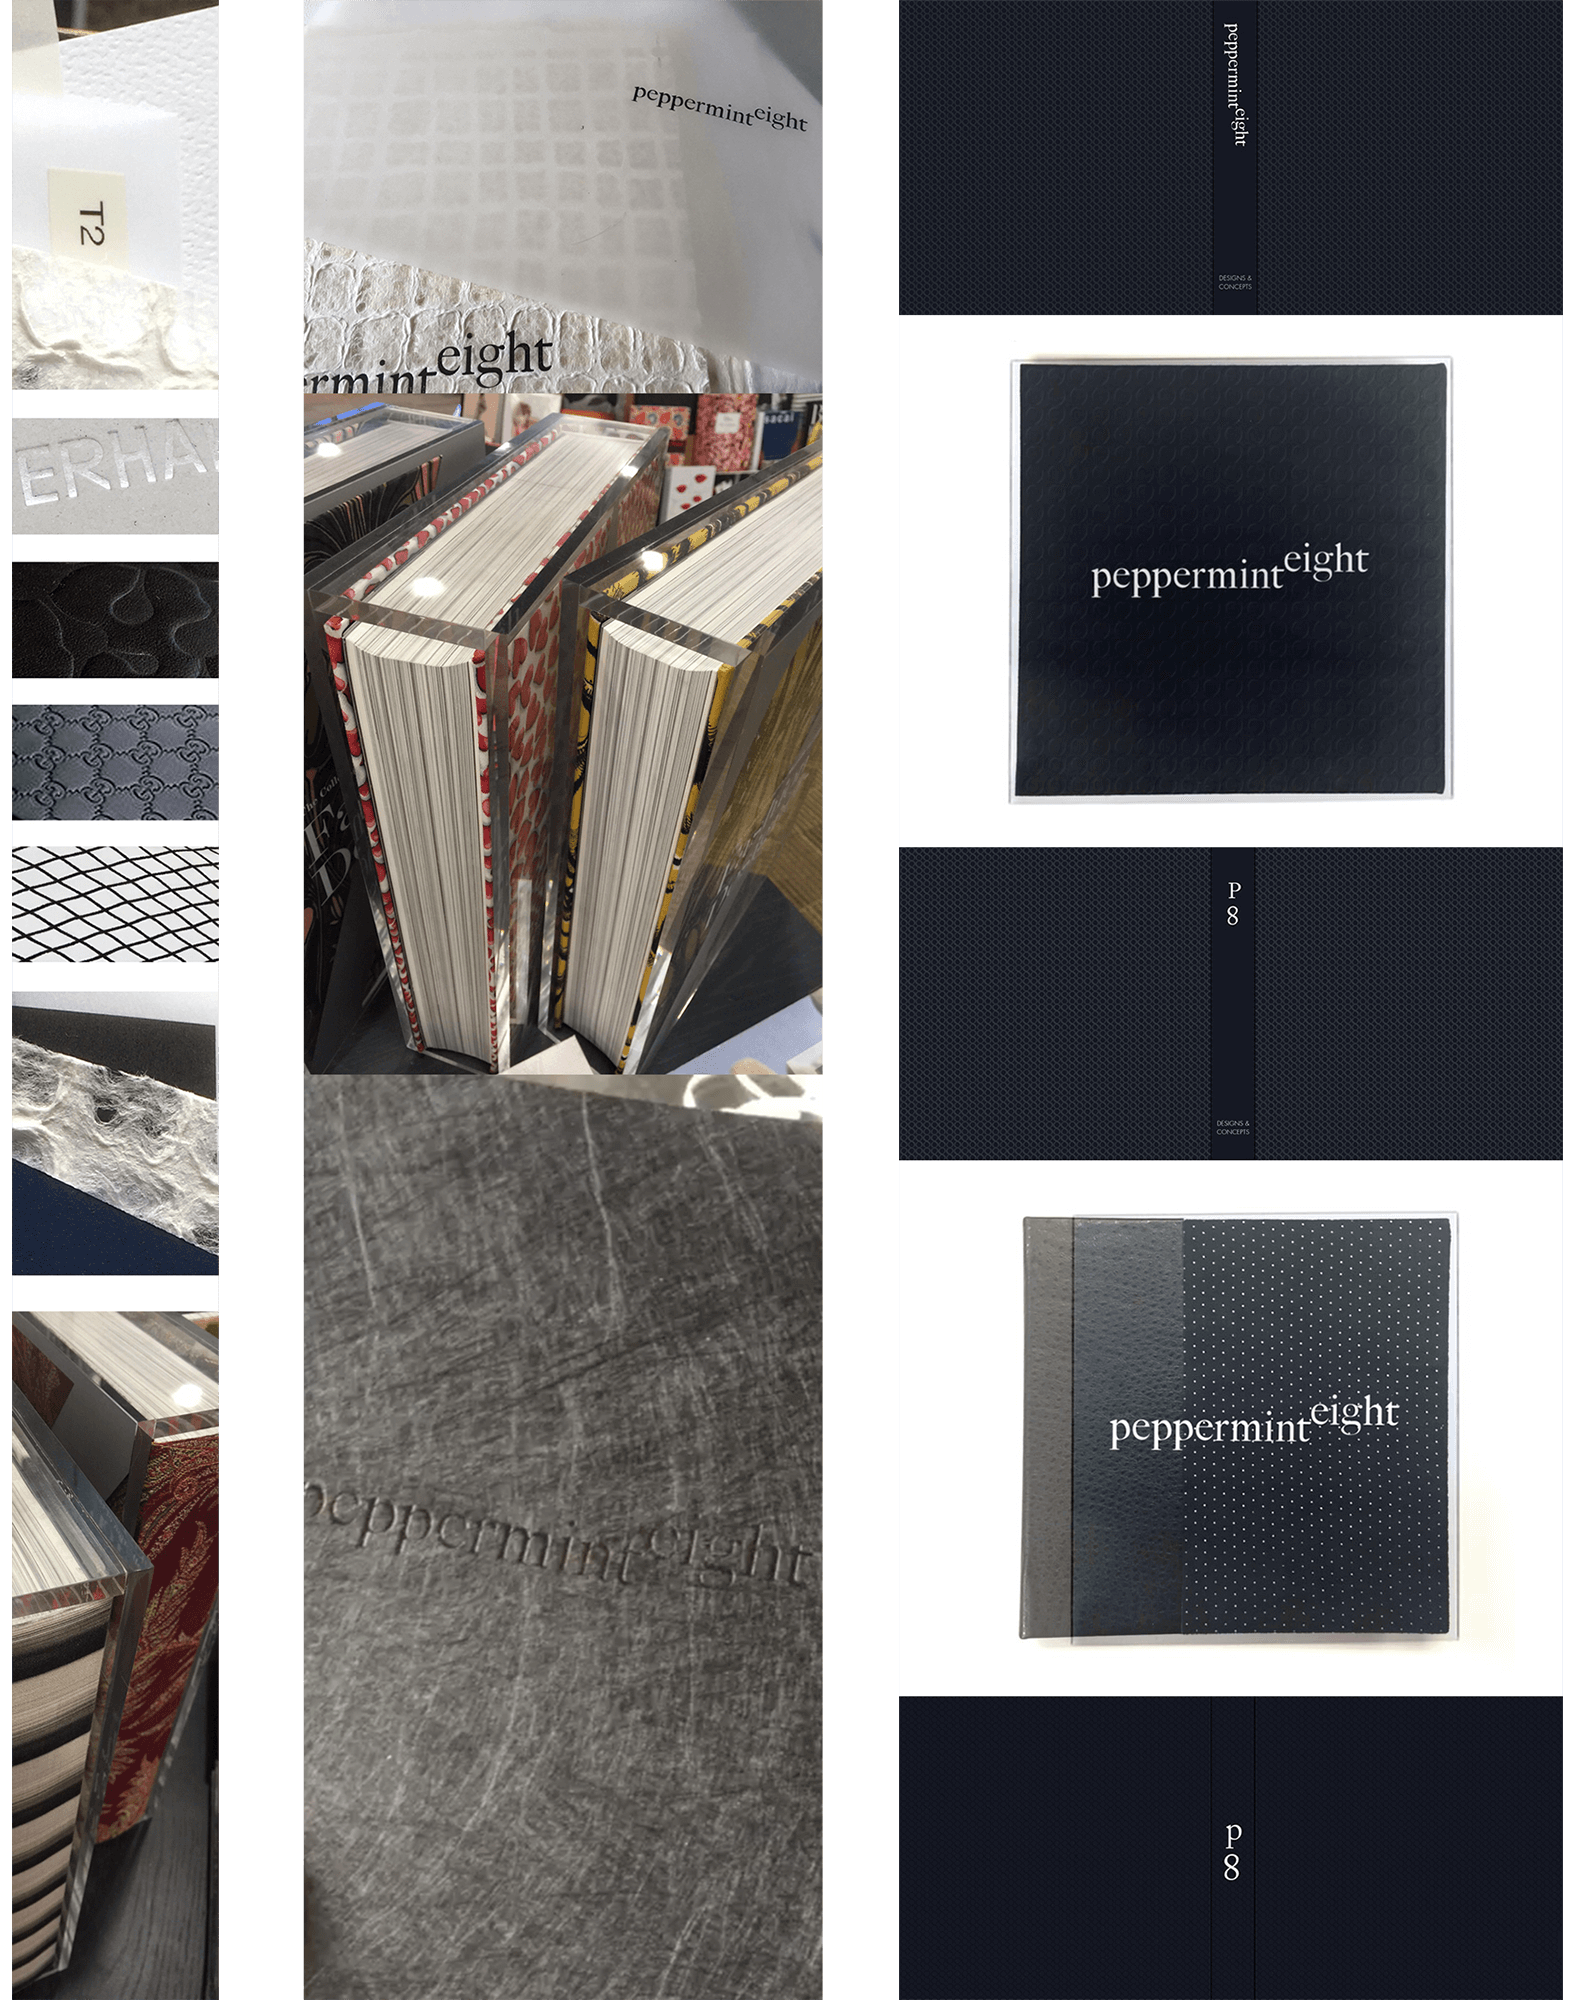 Established local and international manufacturing relationships to adapt that deck in physical portfolio using custom bookbinding, spot UV, acrylic fabrication, dye cuts, 10+ specialty papers and more.